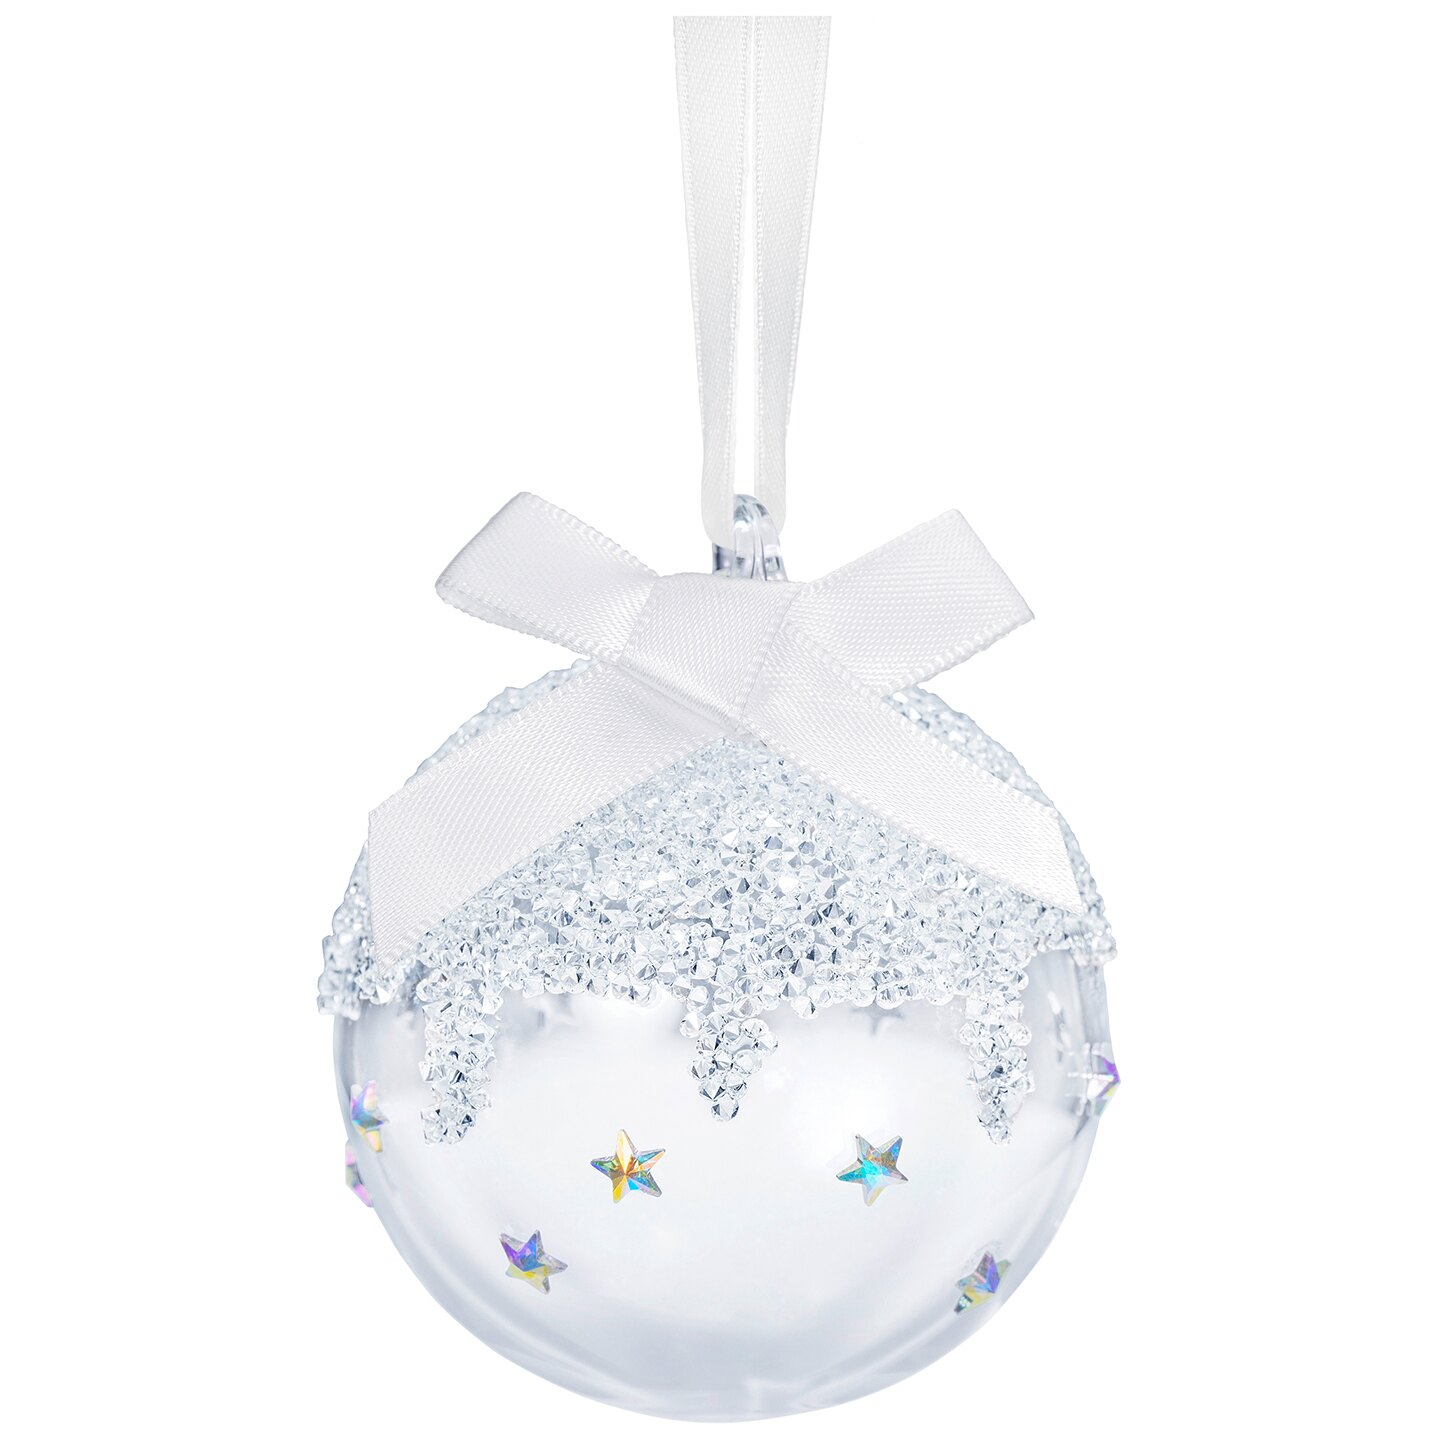 Swarovski Christmas Ball Ornament, small by Swarovski